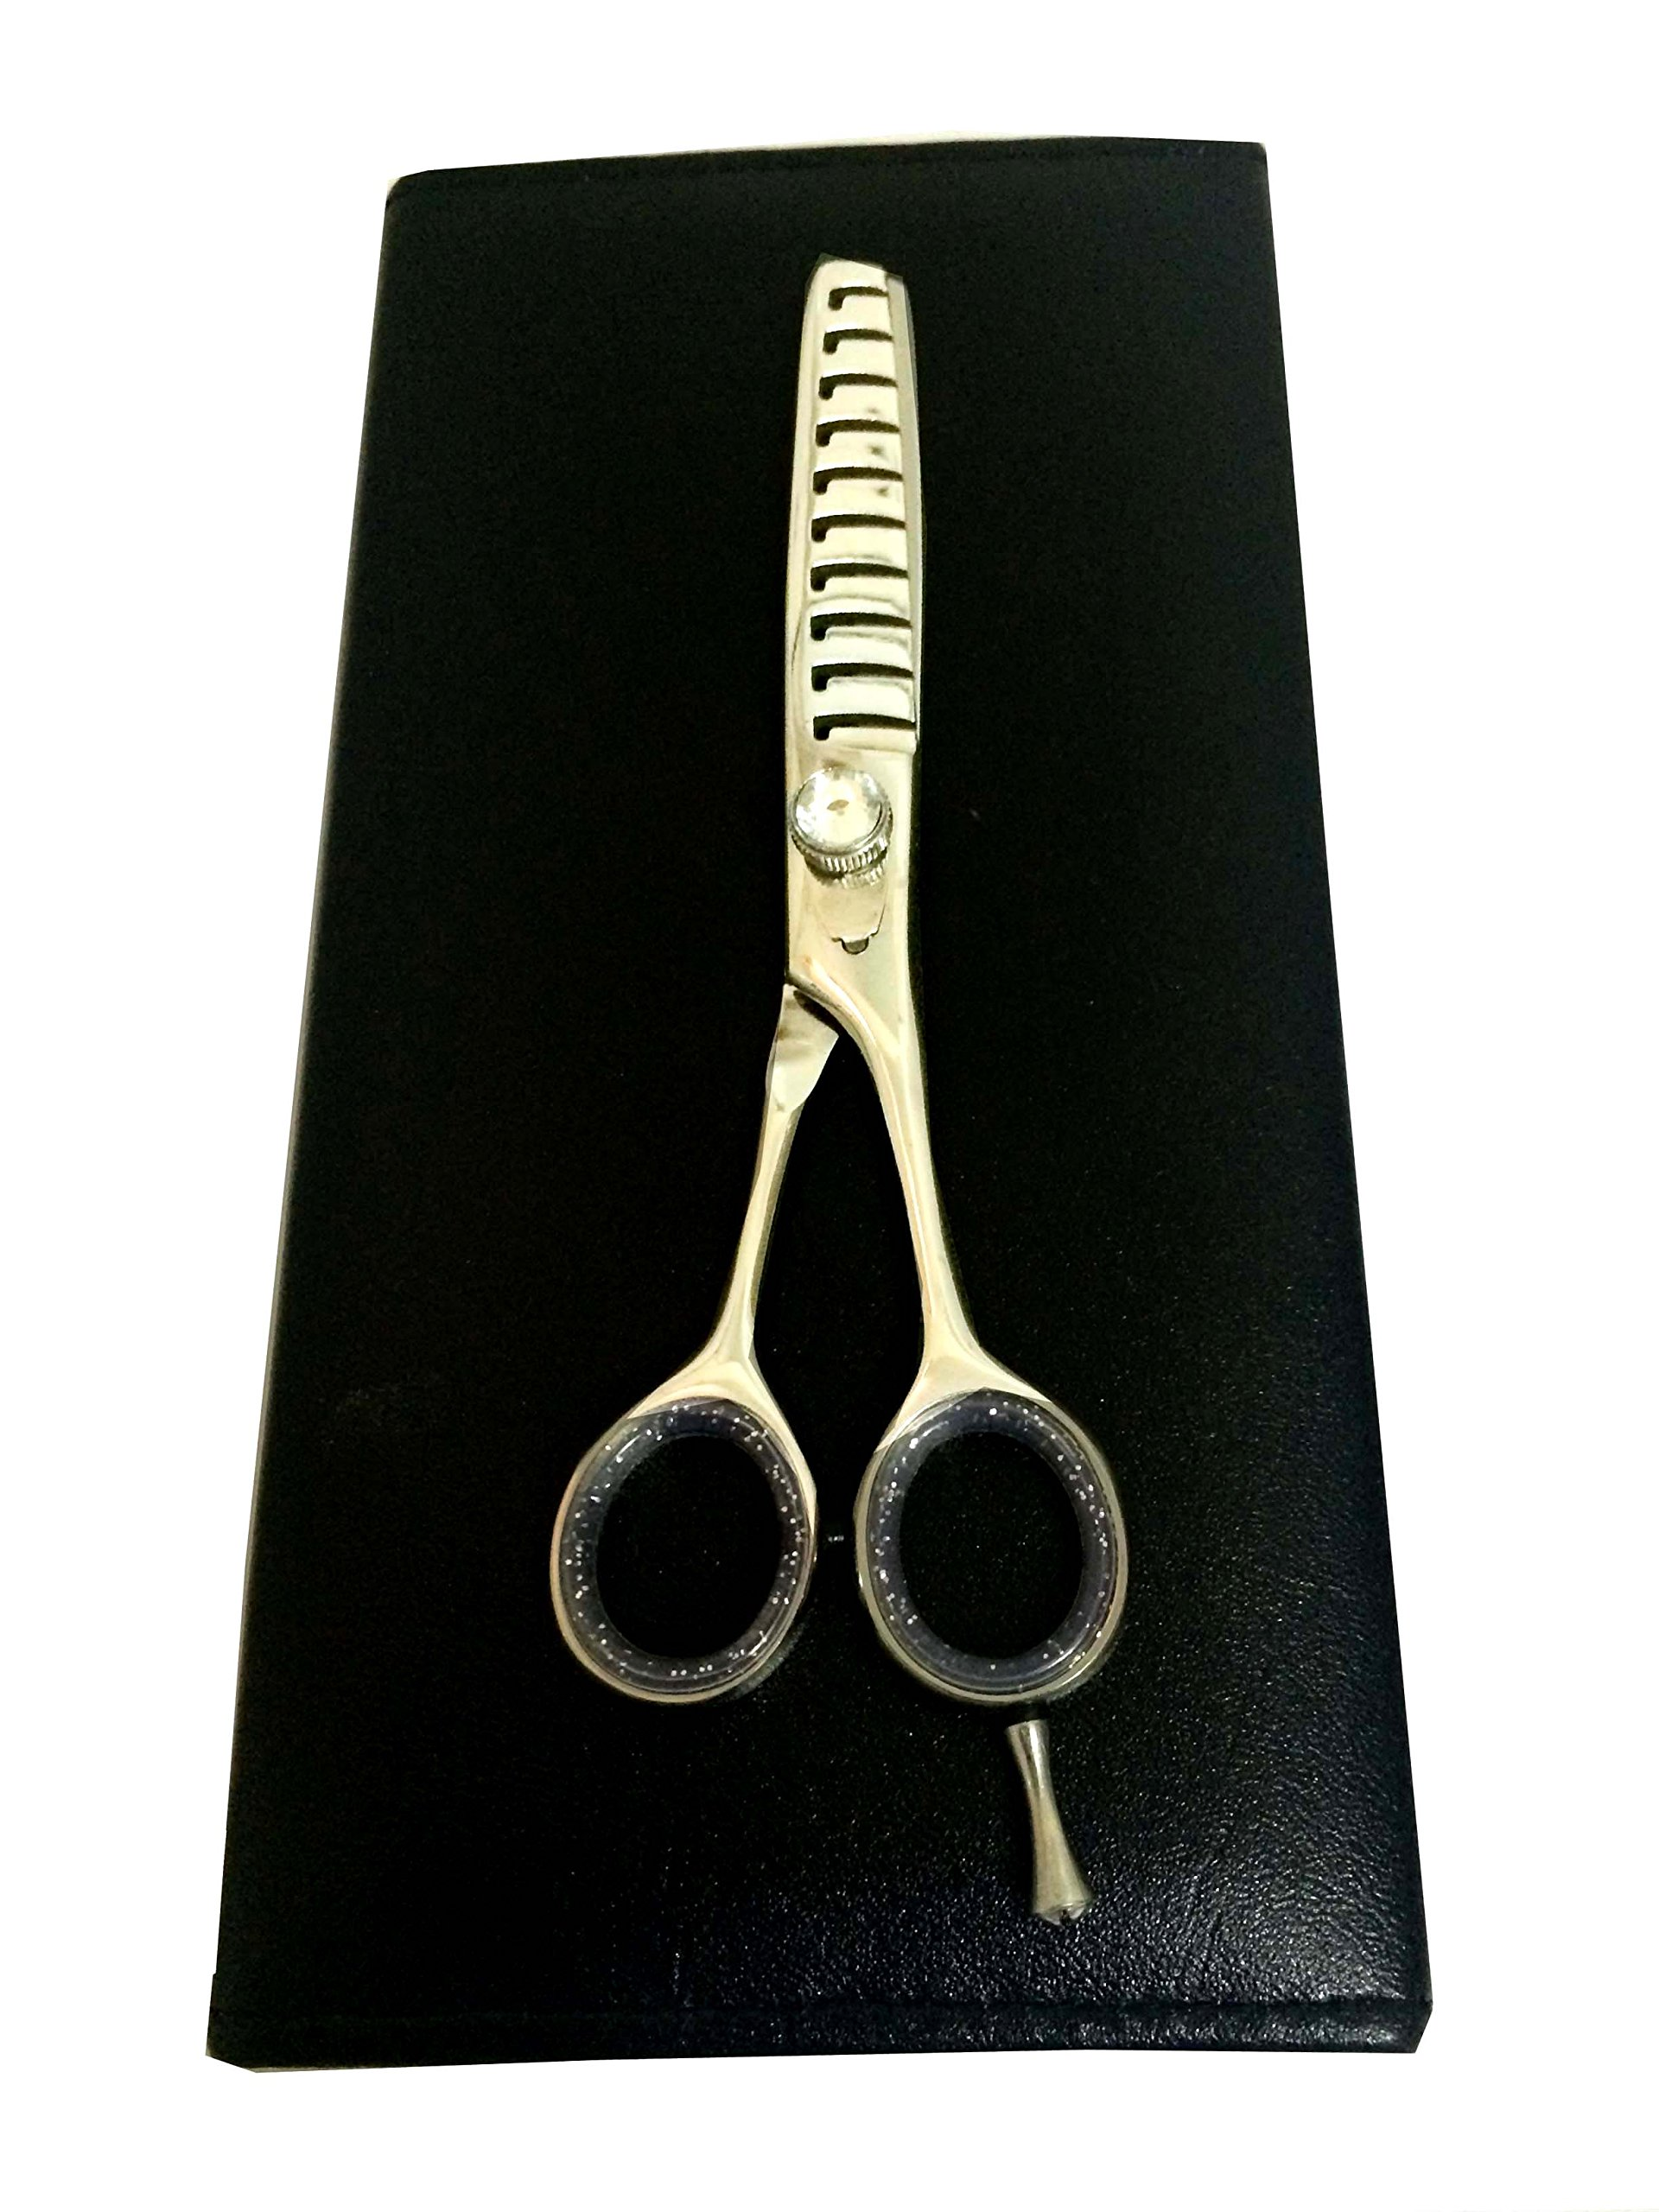 ZZZRT New Polish J2 10-teeth Japanese Steel Professional Razor Edge Barber Thinning, blending, layering and texturizing Scissor/ Shear 6'' + Free Pouch by ZZZRT traders (Image #1)